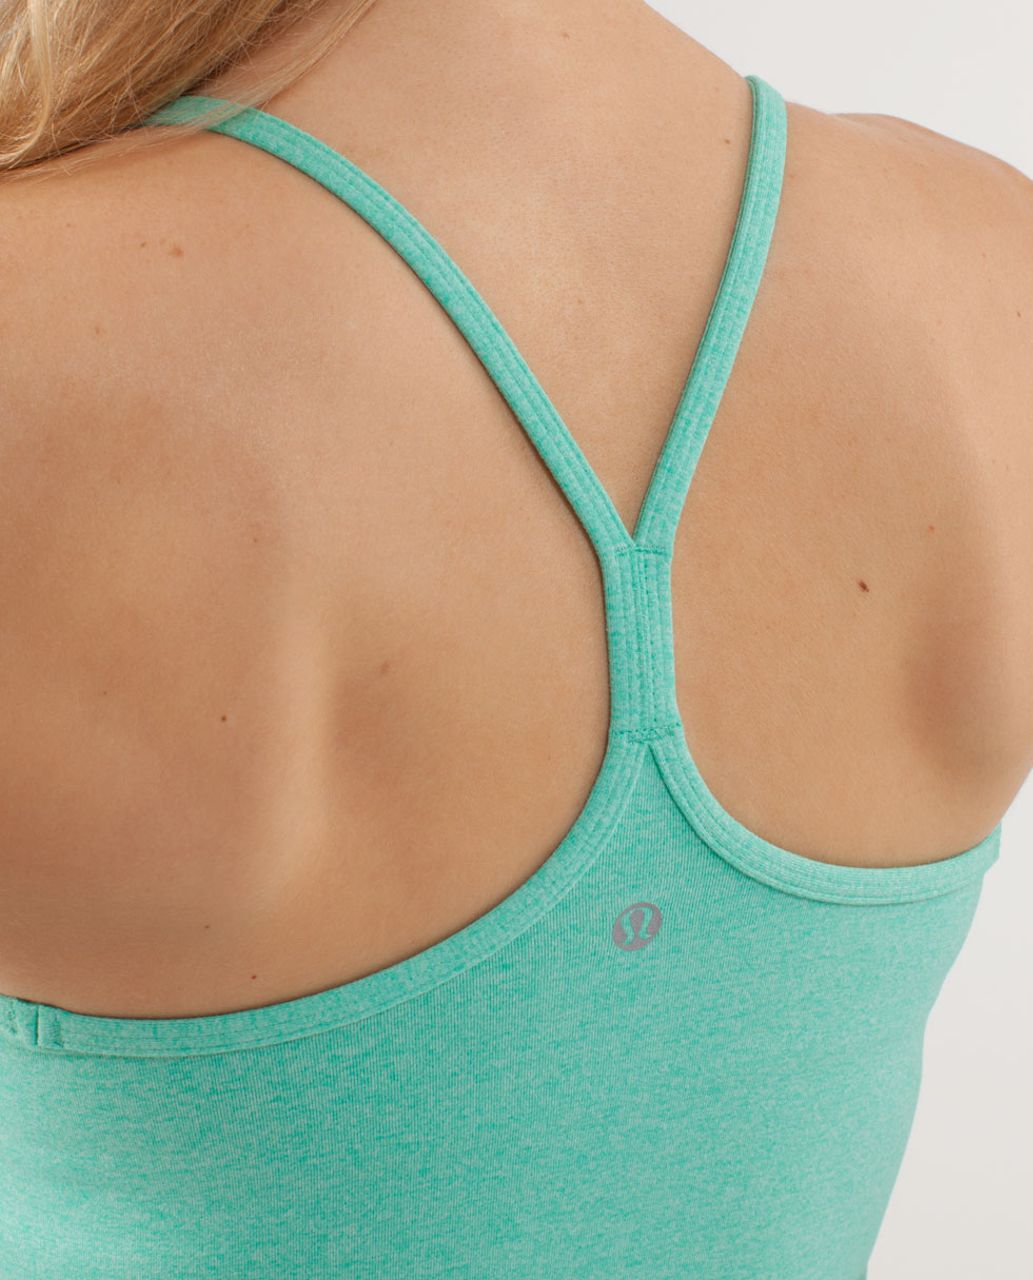 Lululemon Power Y Tank *Luon - Heathered Menthol